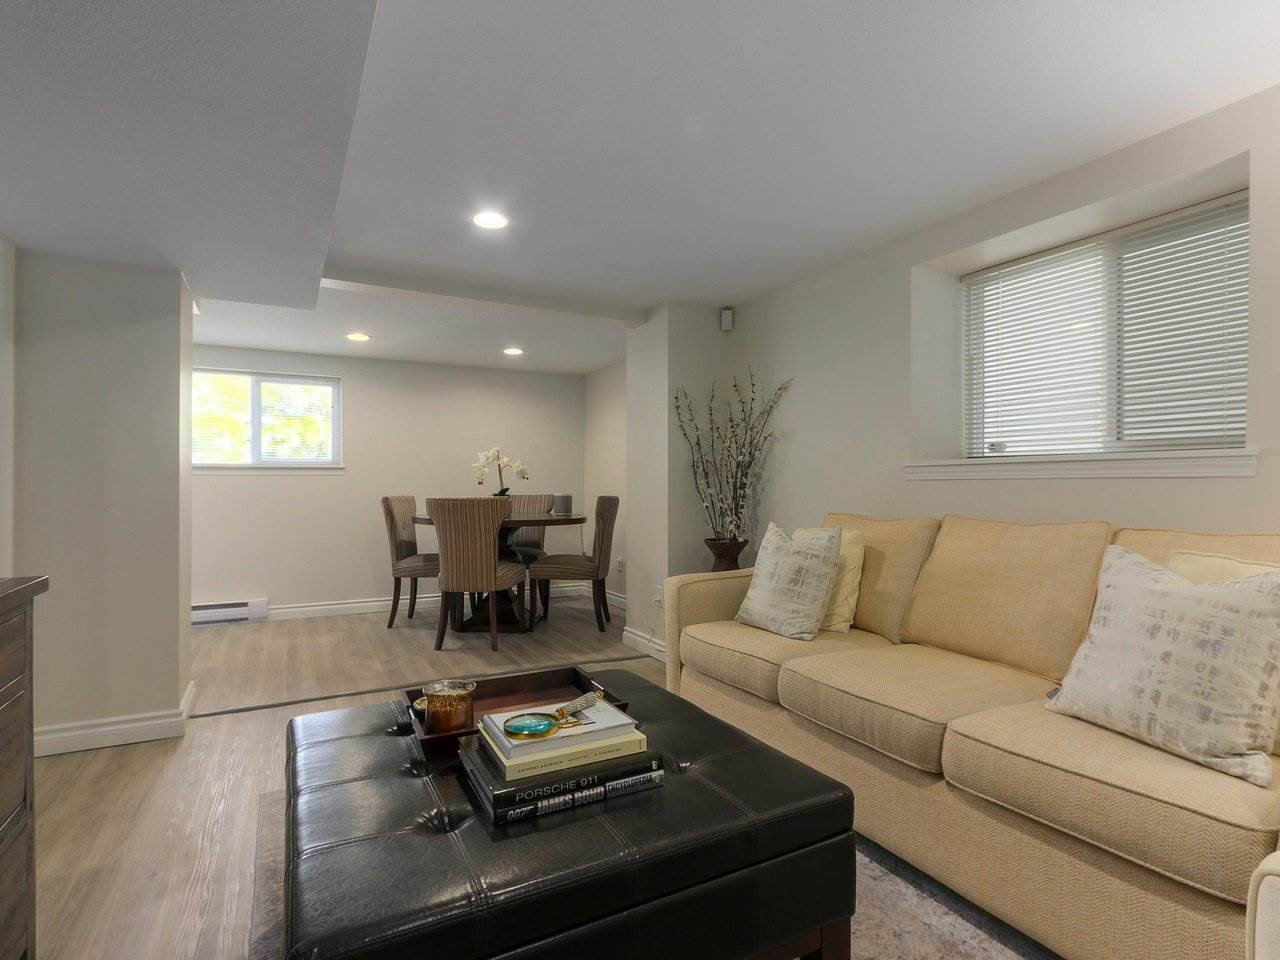 """Photo 15: Photos: 2610 W 10TH Avenue in Vancouver: Kitsilano House for sale in """"Kitsilano"""" (Vancouver West)  : MLS®# R2471992"""